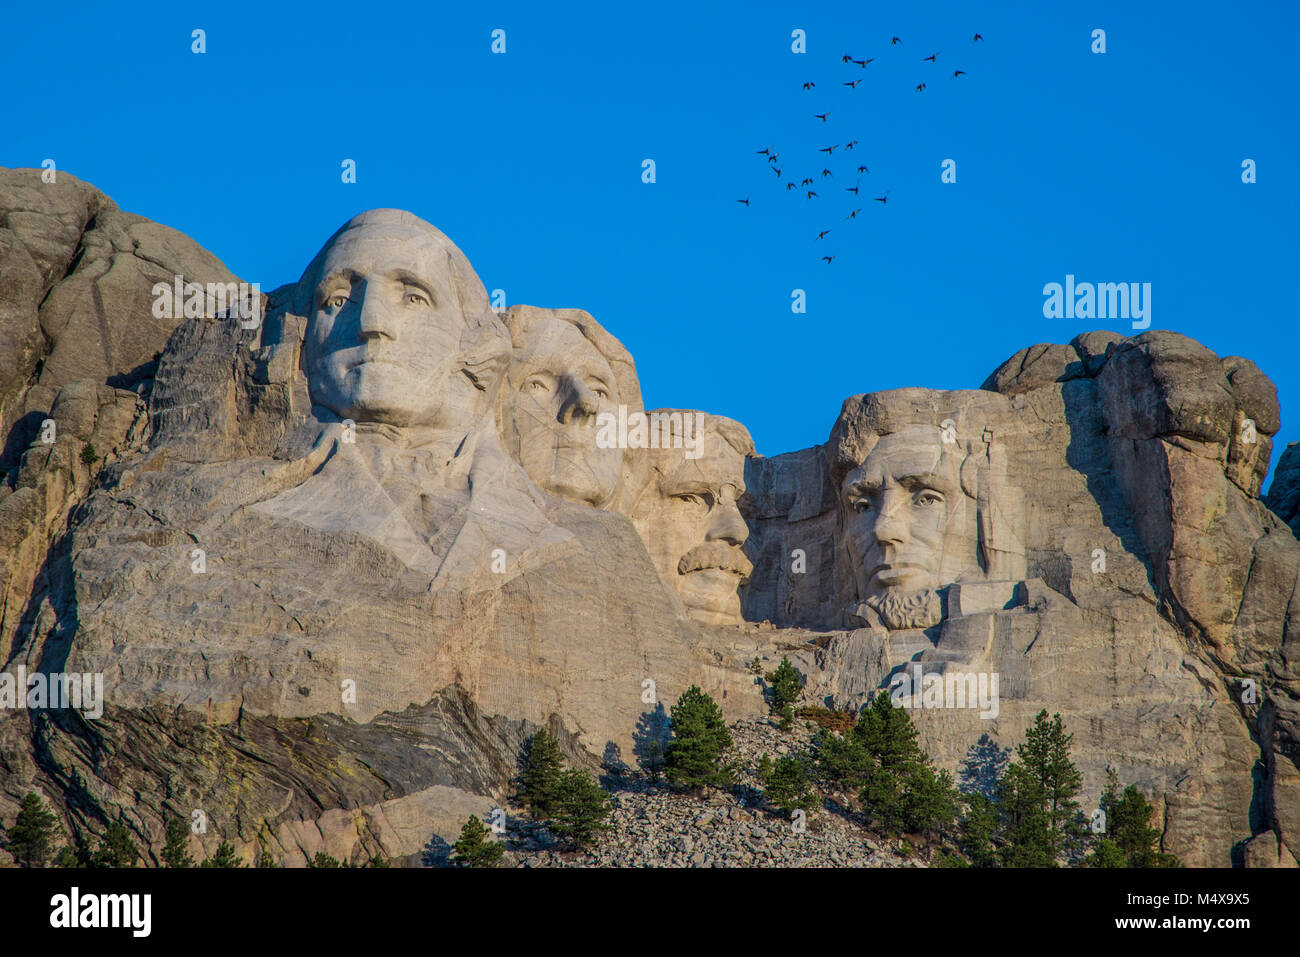 Mount Rushmore near Rapid City in South Dakota - Stock Image